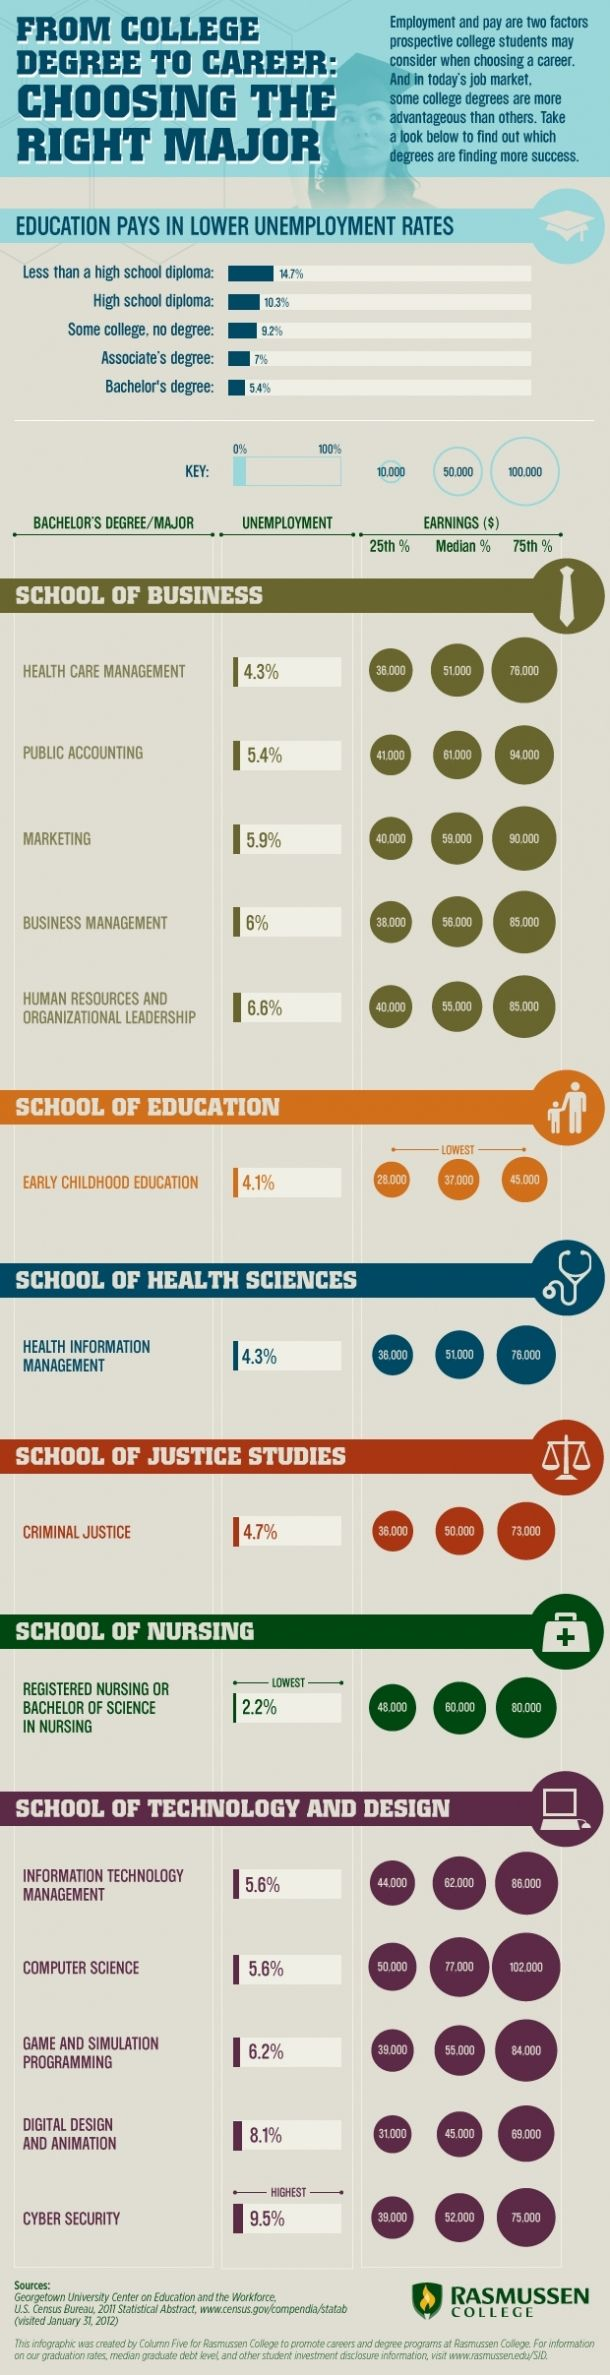 Amazing From College Degree To Career: Choosing The Right Major